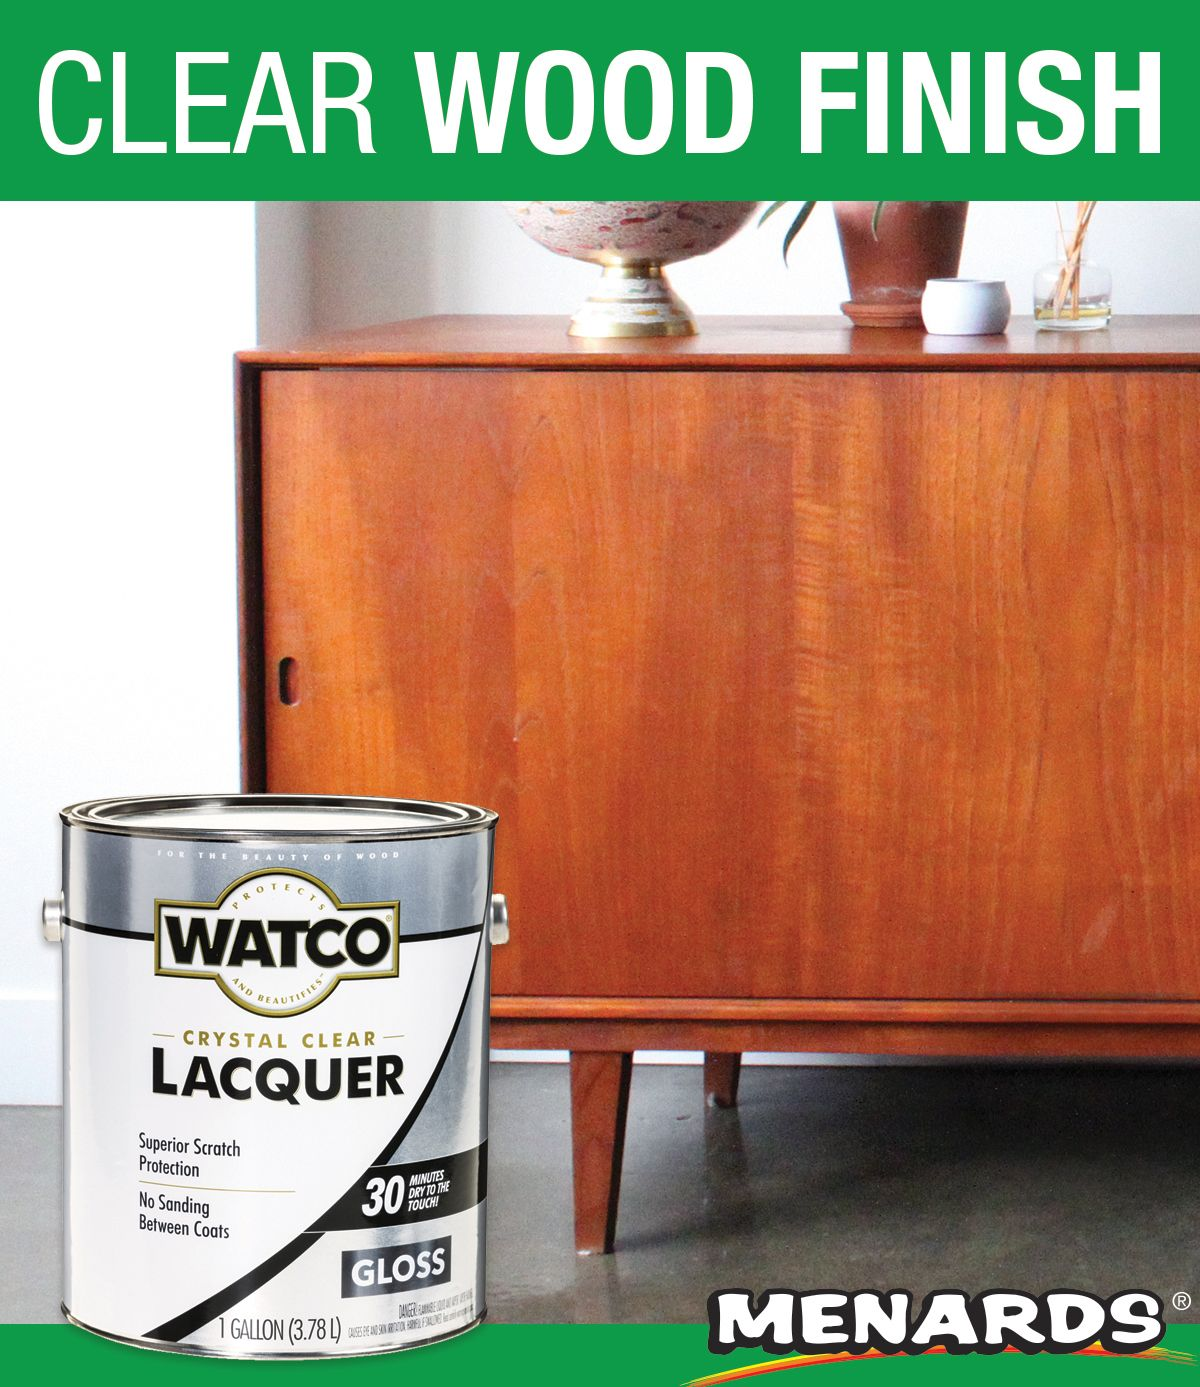 Watco Lacquer Clear Wood Finish Is The Finest Brushing Lacquer Available Watco Lacquer Fills In The Pores Of Most Wood Types In 2020 Wood Finish Watco Wood Filler